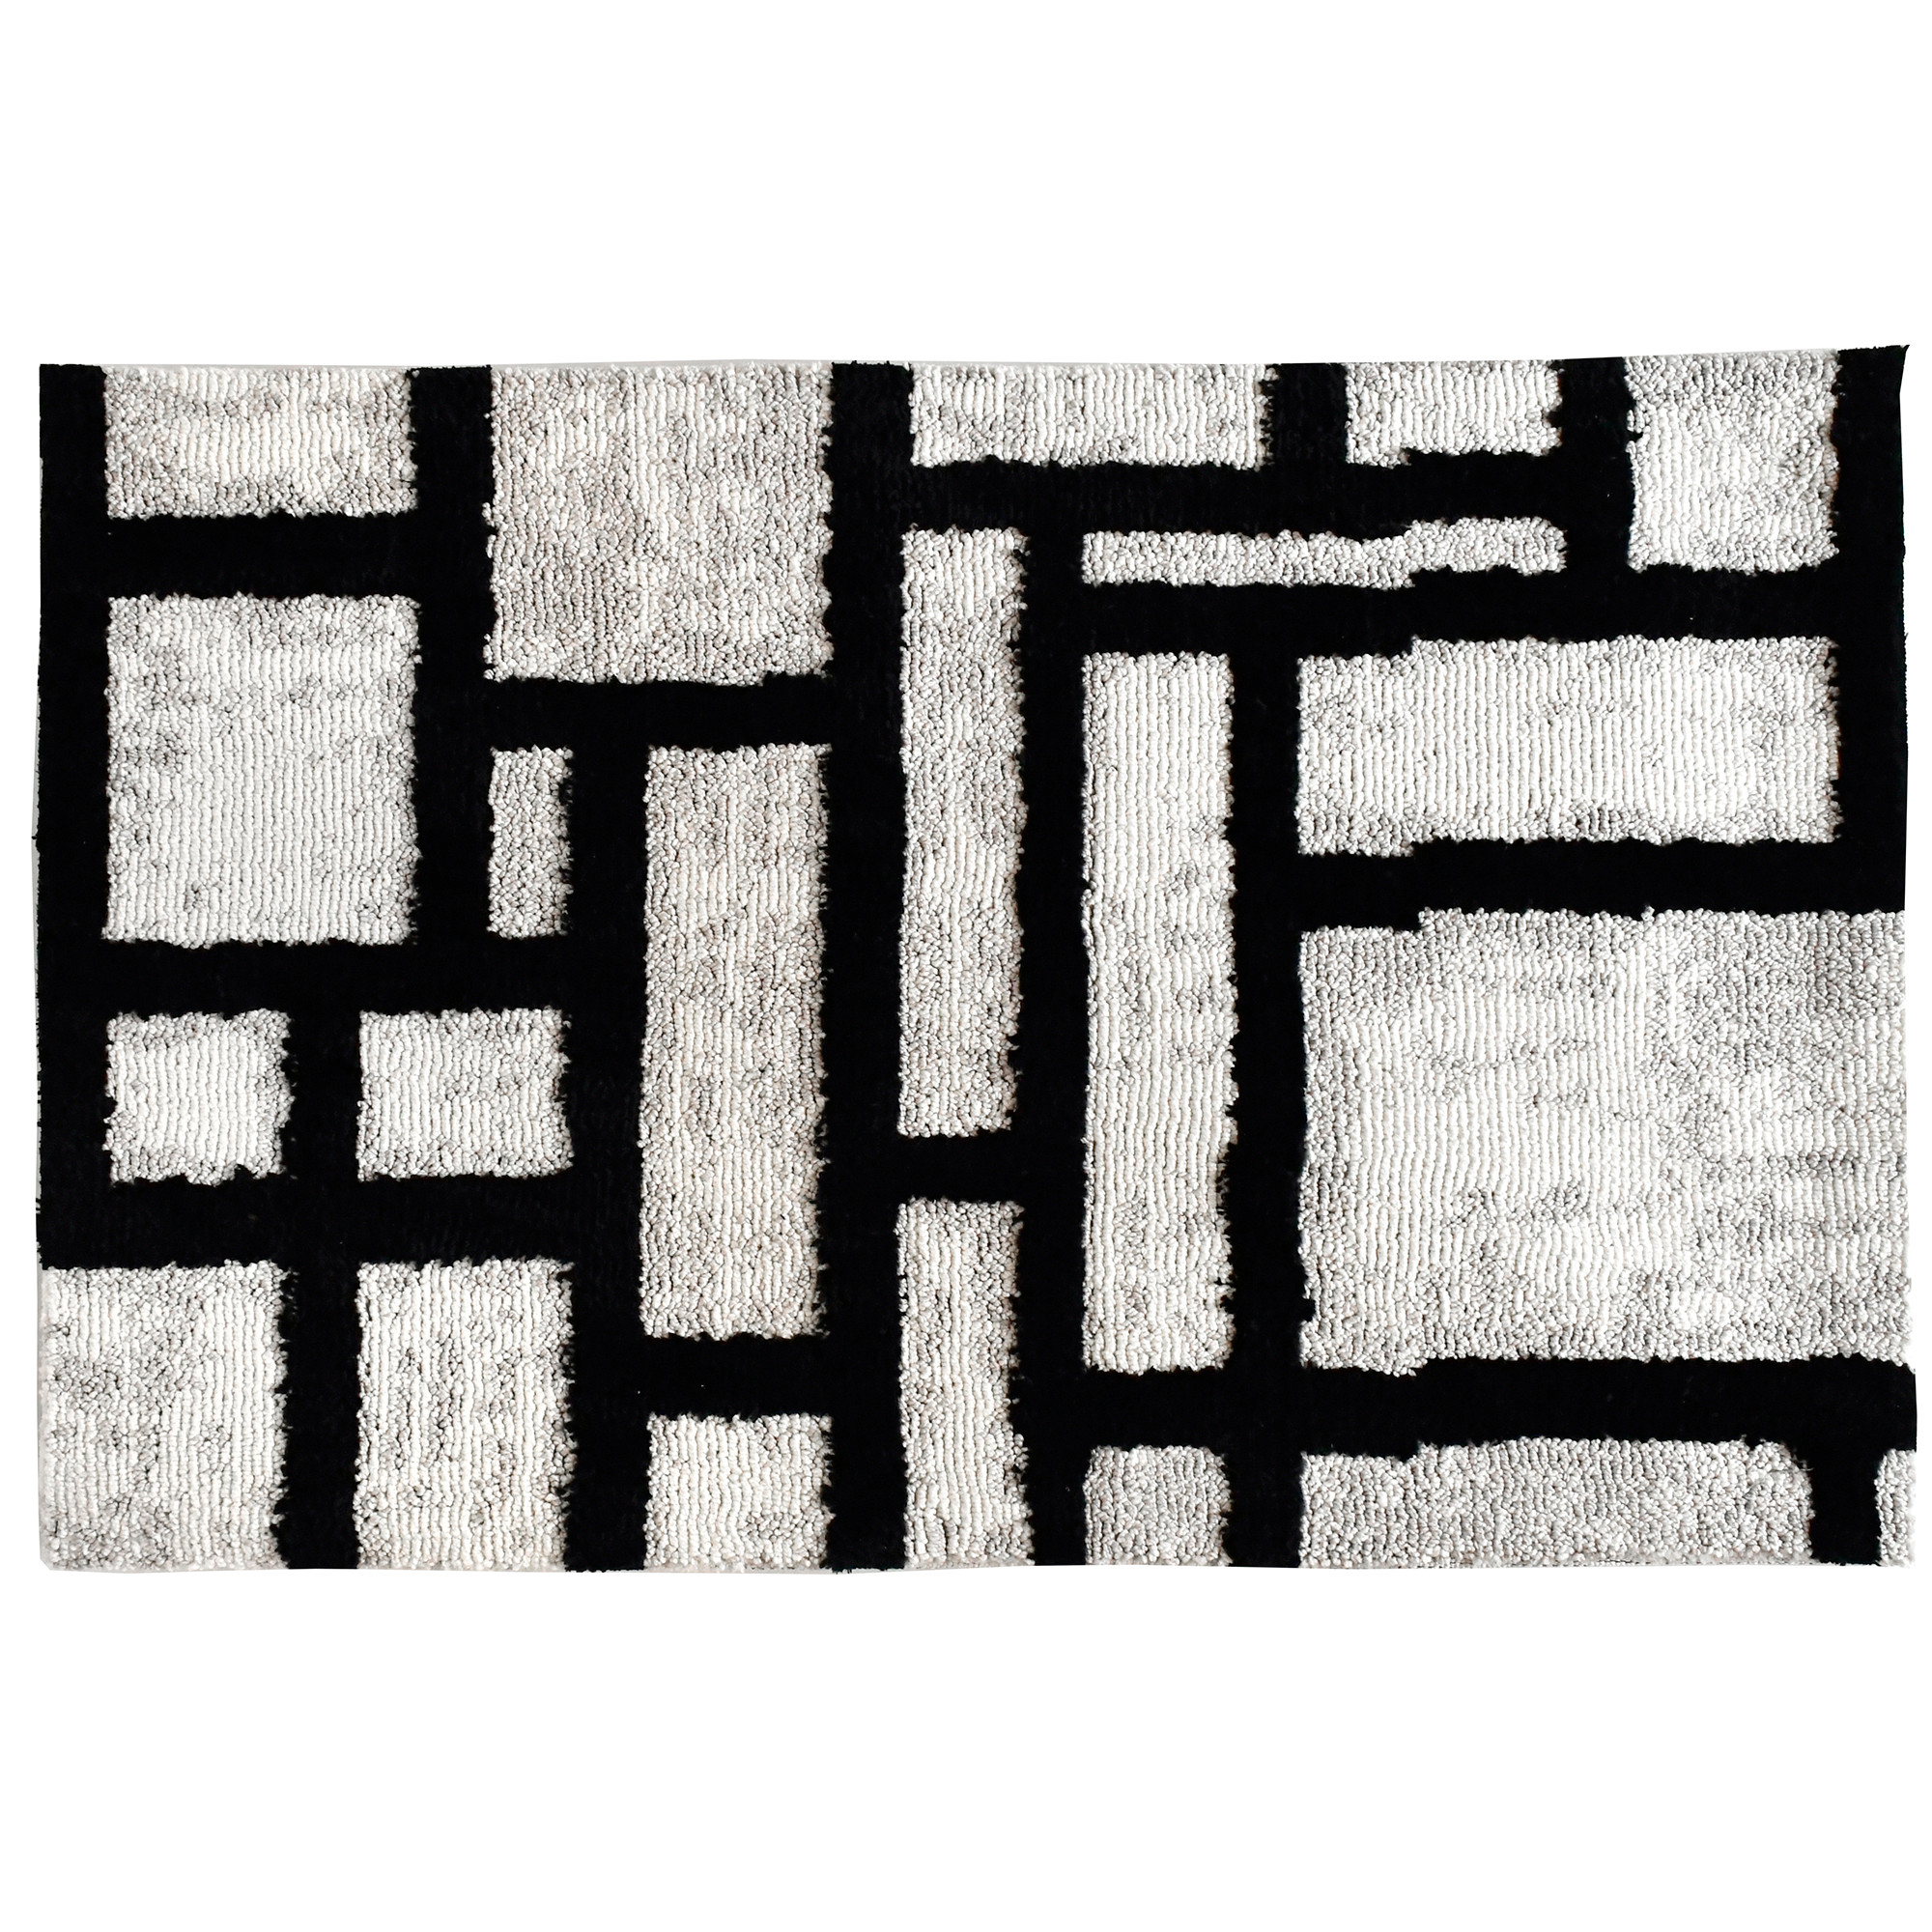 Moira Hershey has trapped our attention in an intricate labyrinth on this Simple Spaces by Jellybean® accent rug. The bold black strokes against the cream background offers a timeless combination of colors while making a bold statement. Available in two sizes, this accent rug will present style wherever it is introduced.